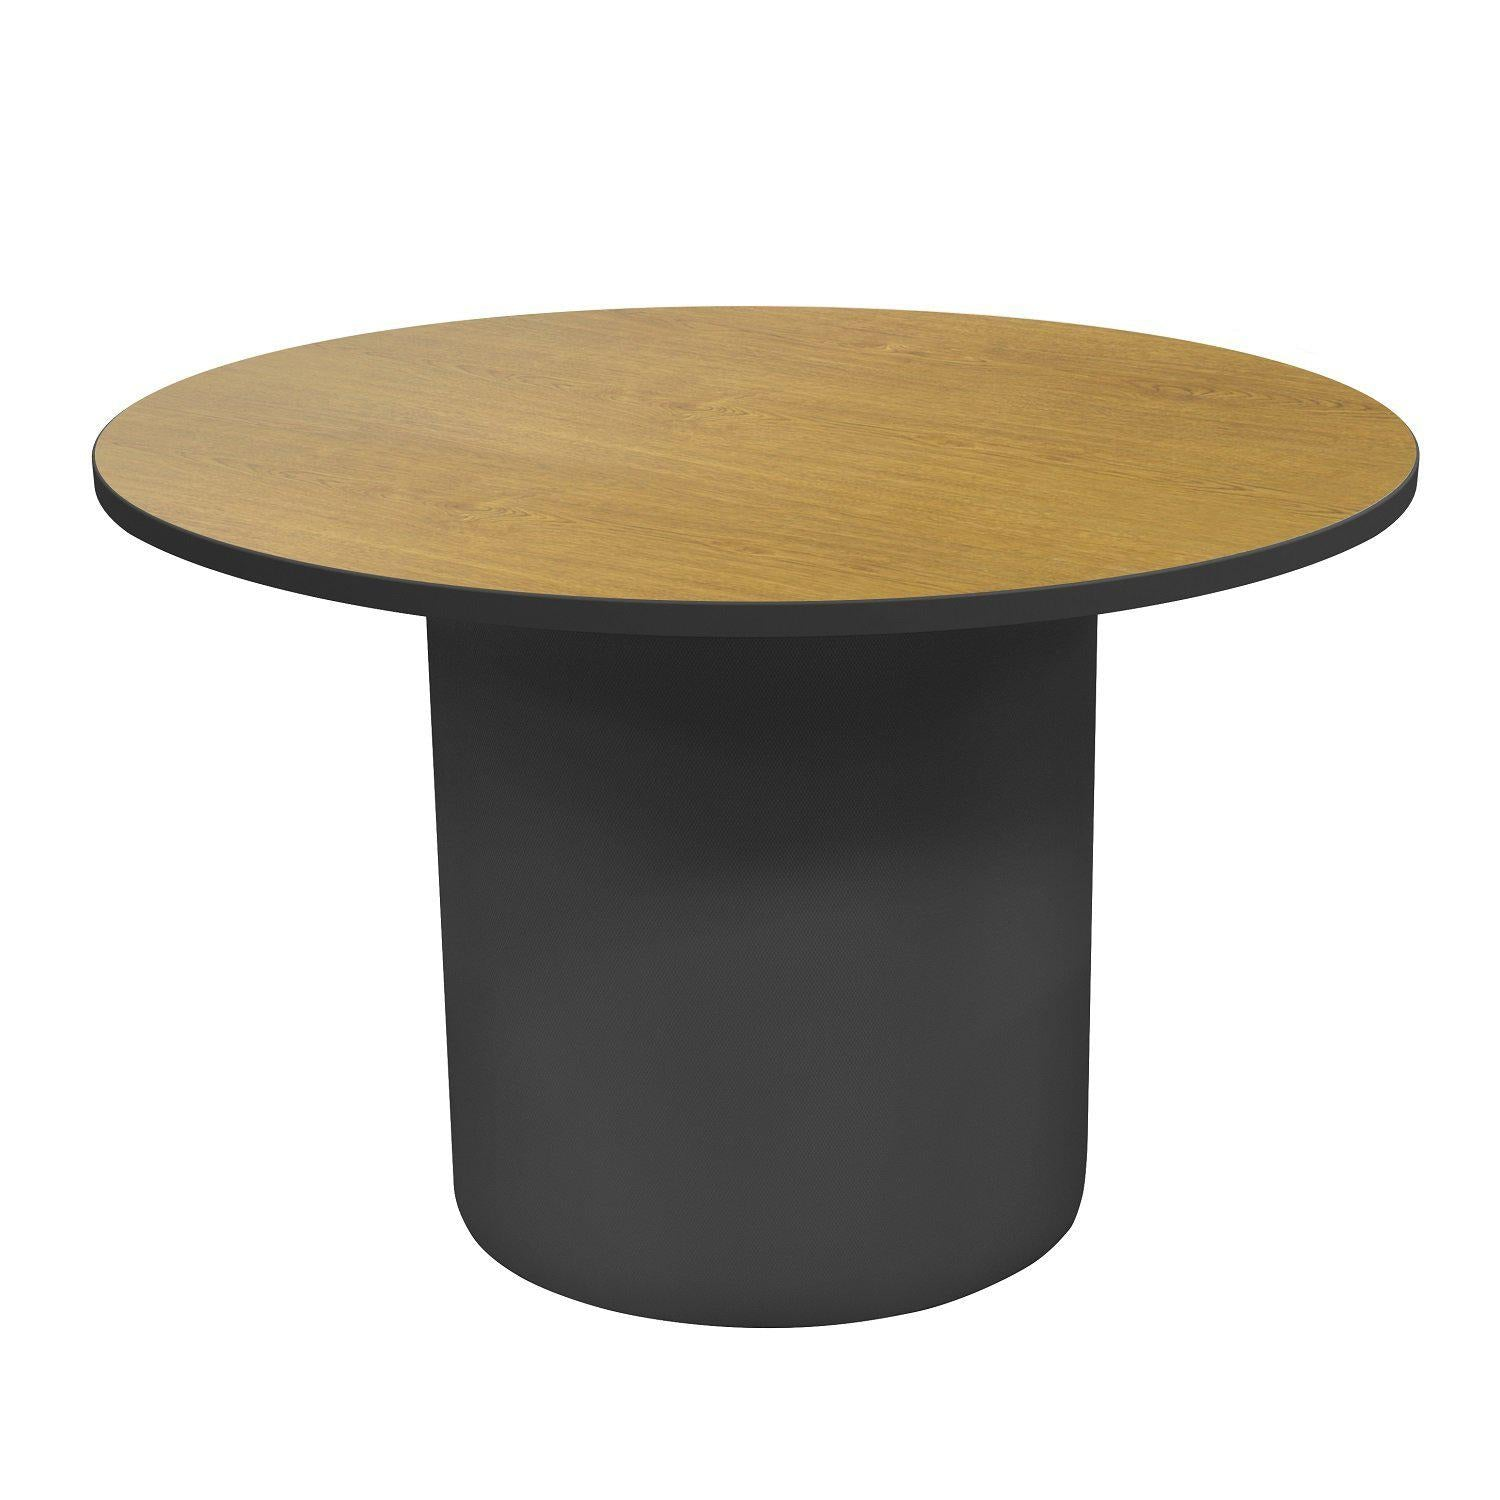 "Sonik™ Soft Seating 48"" Round Table-Soft Seating-29""-Solar Oak/Black-Frost"